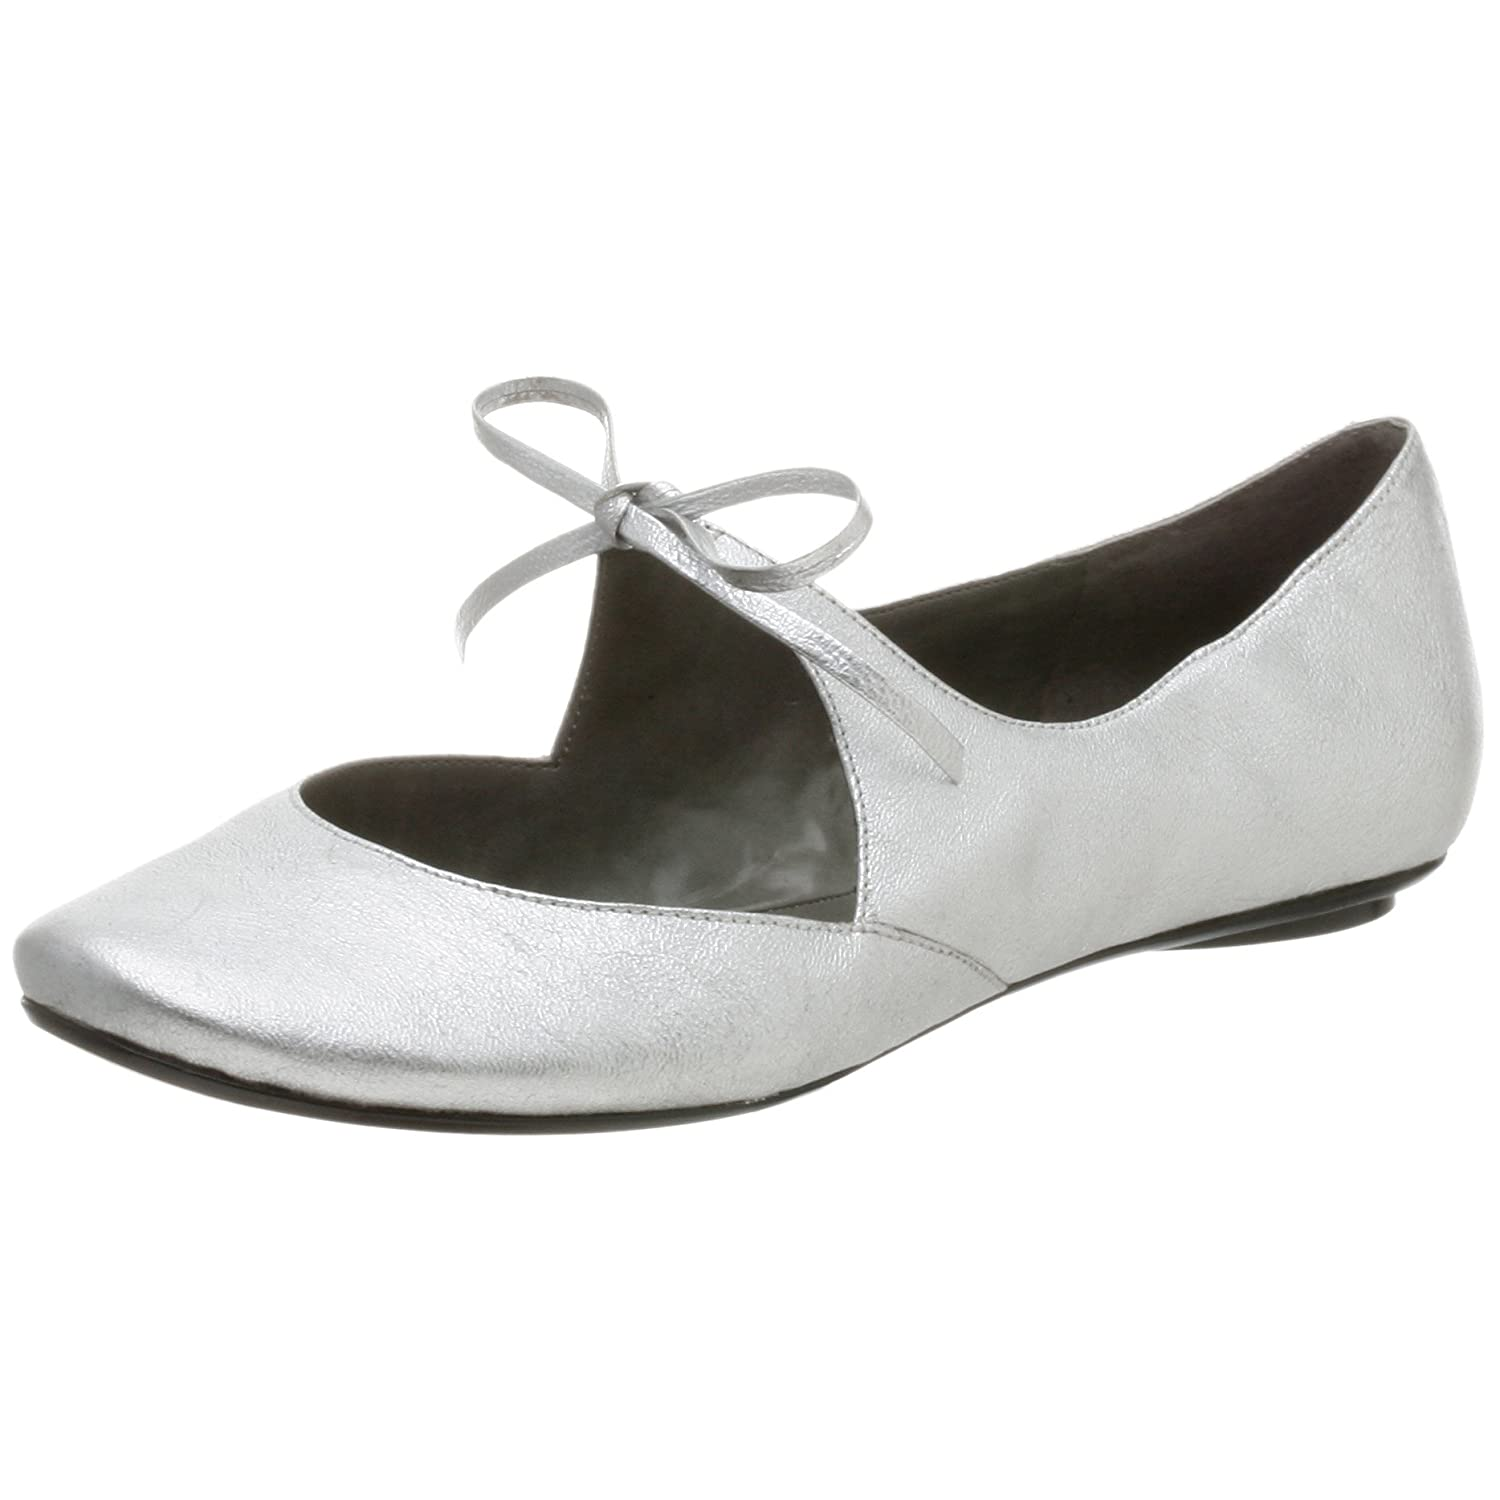 Endless.com: Nine West Women's Greco Mary Jane Flat: Flats & Loafers from endless.com